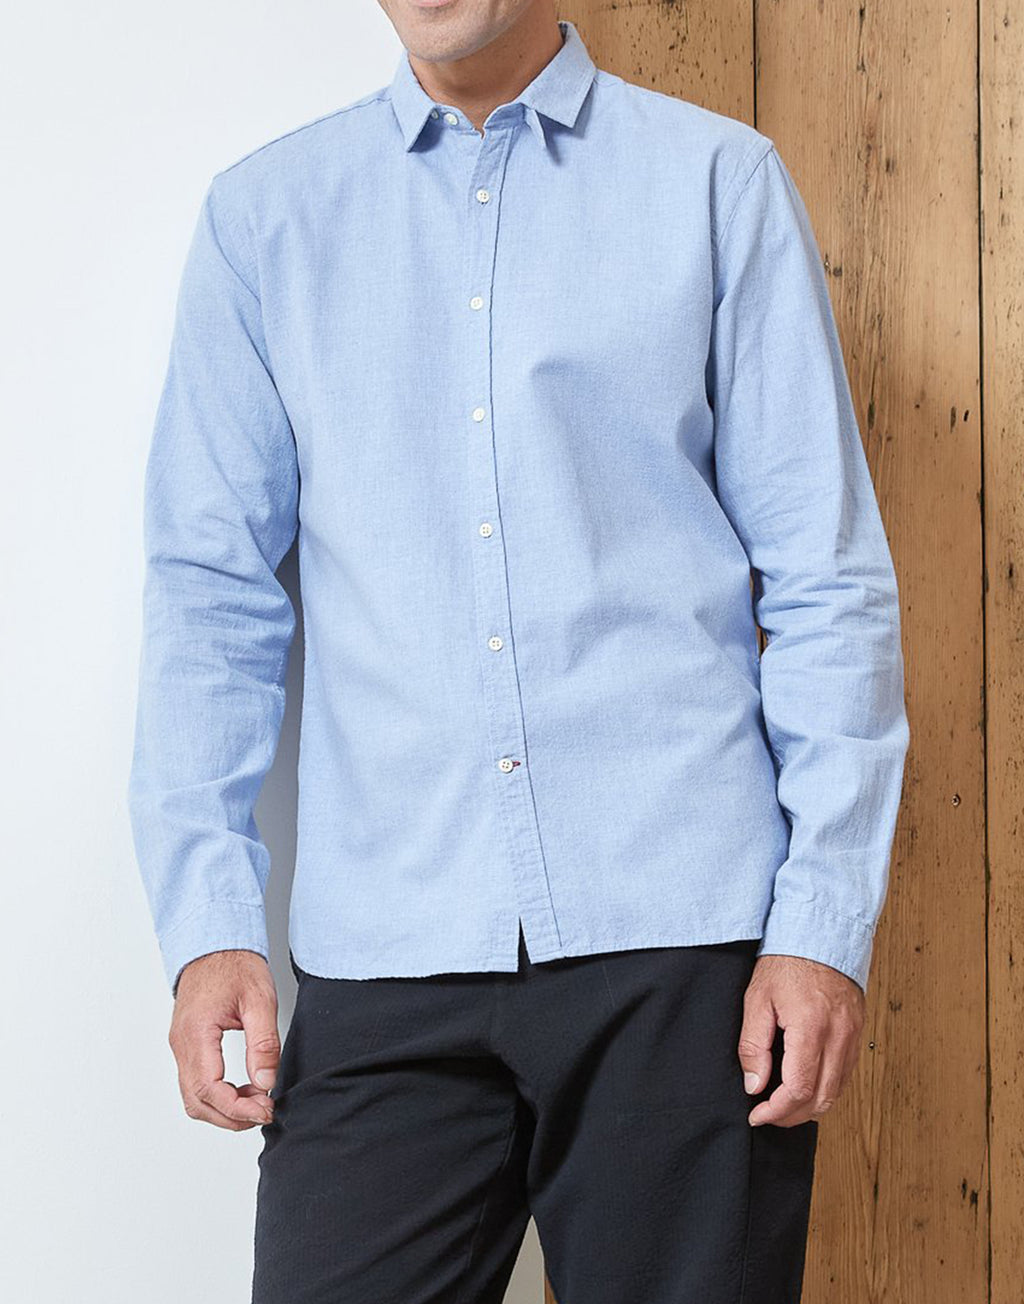 Oliver Spencer Clerkenwell Woburn tab Shirt Sky Blue